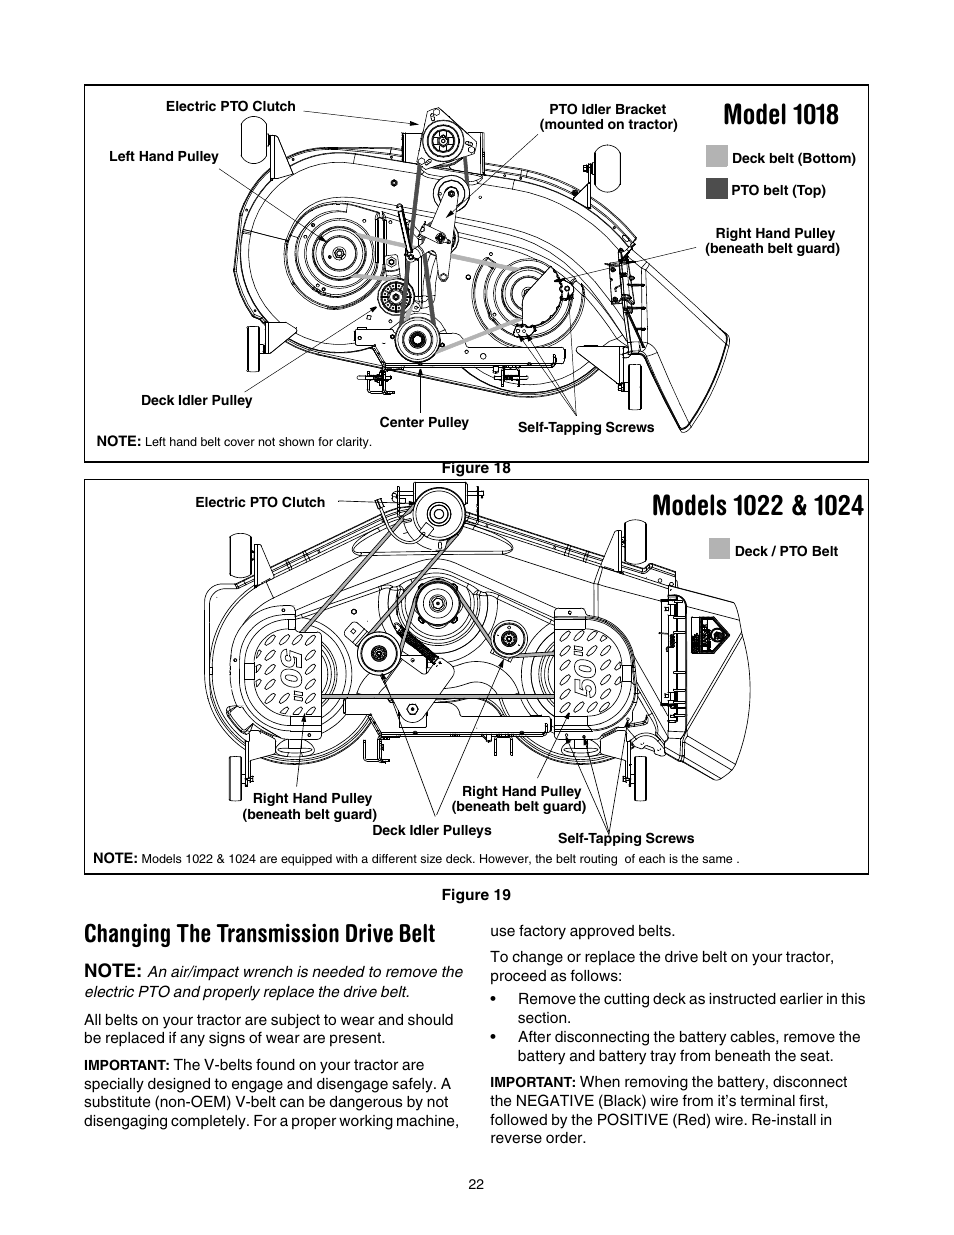 medium resolution of model 1018 changing the transmission drive belt cub cadet lt1022 user manual page 22 28